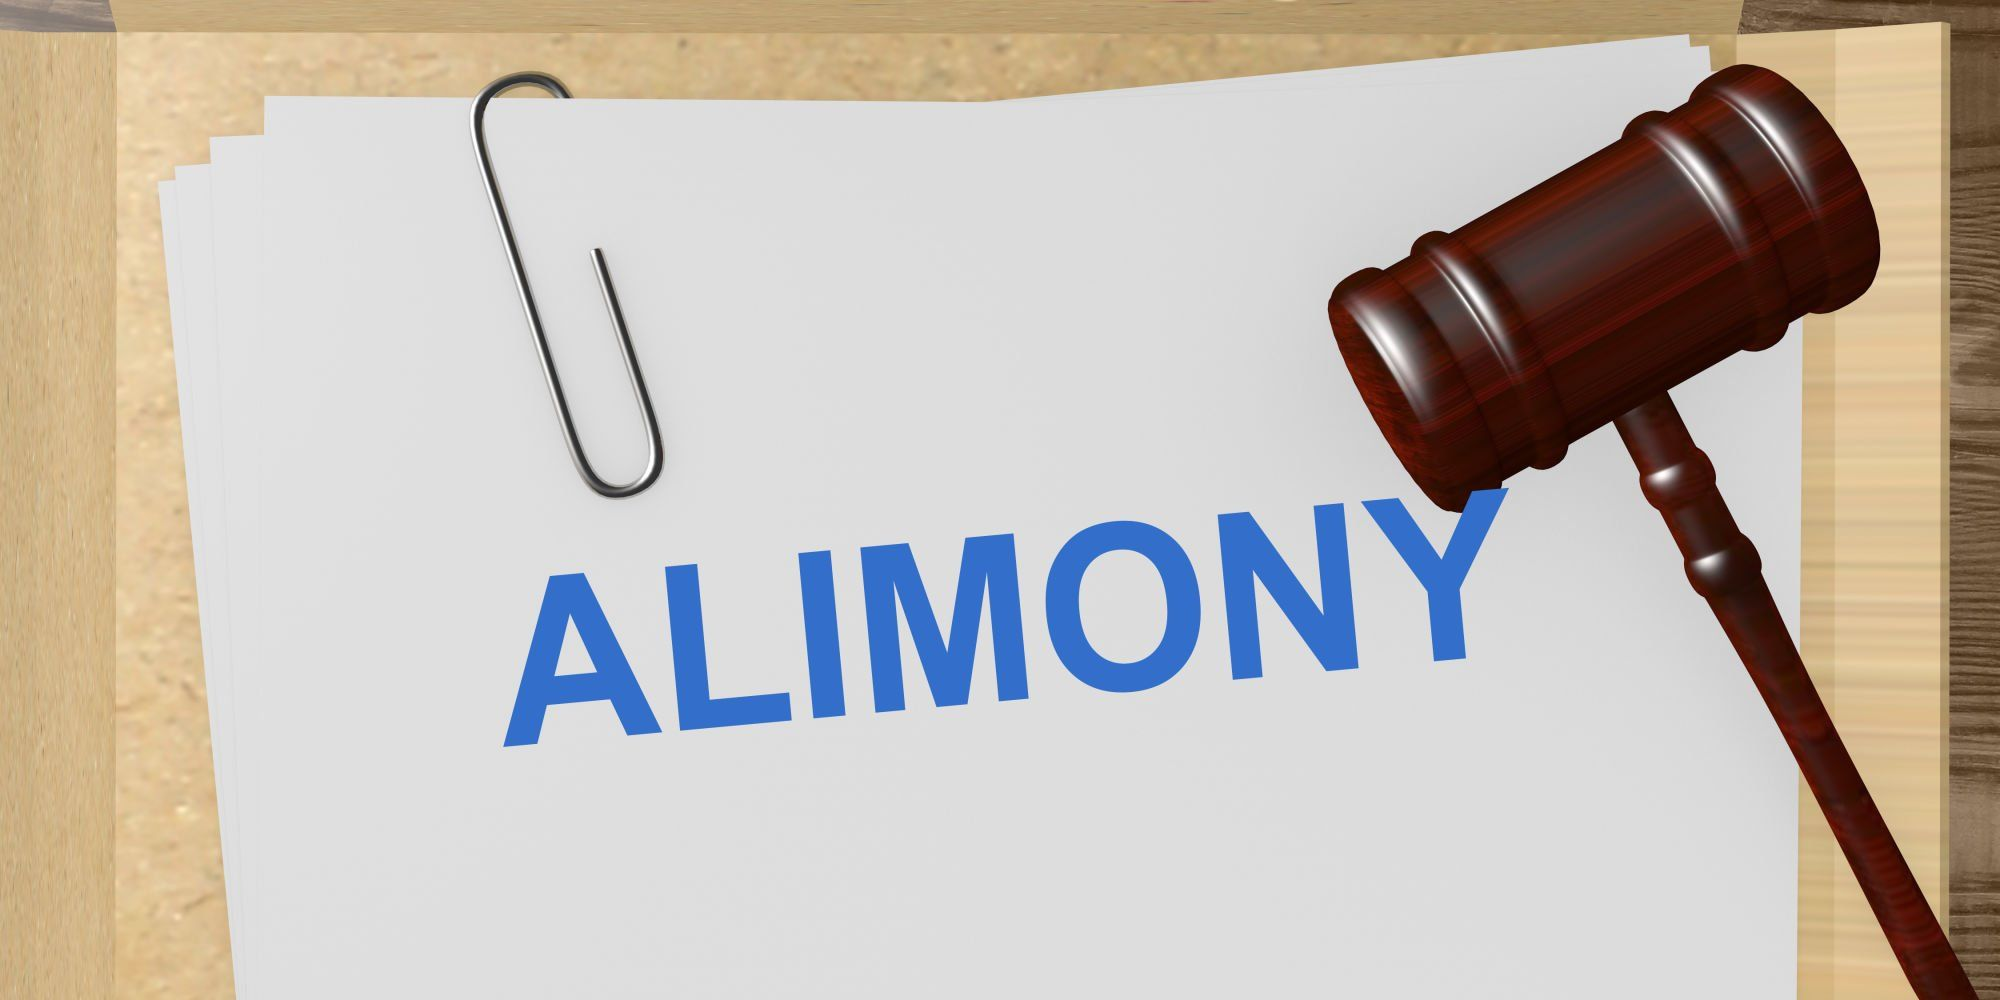 Delhi Court judge Rekha Rani refused alimony to wife instead asked her to earn